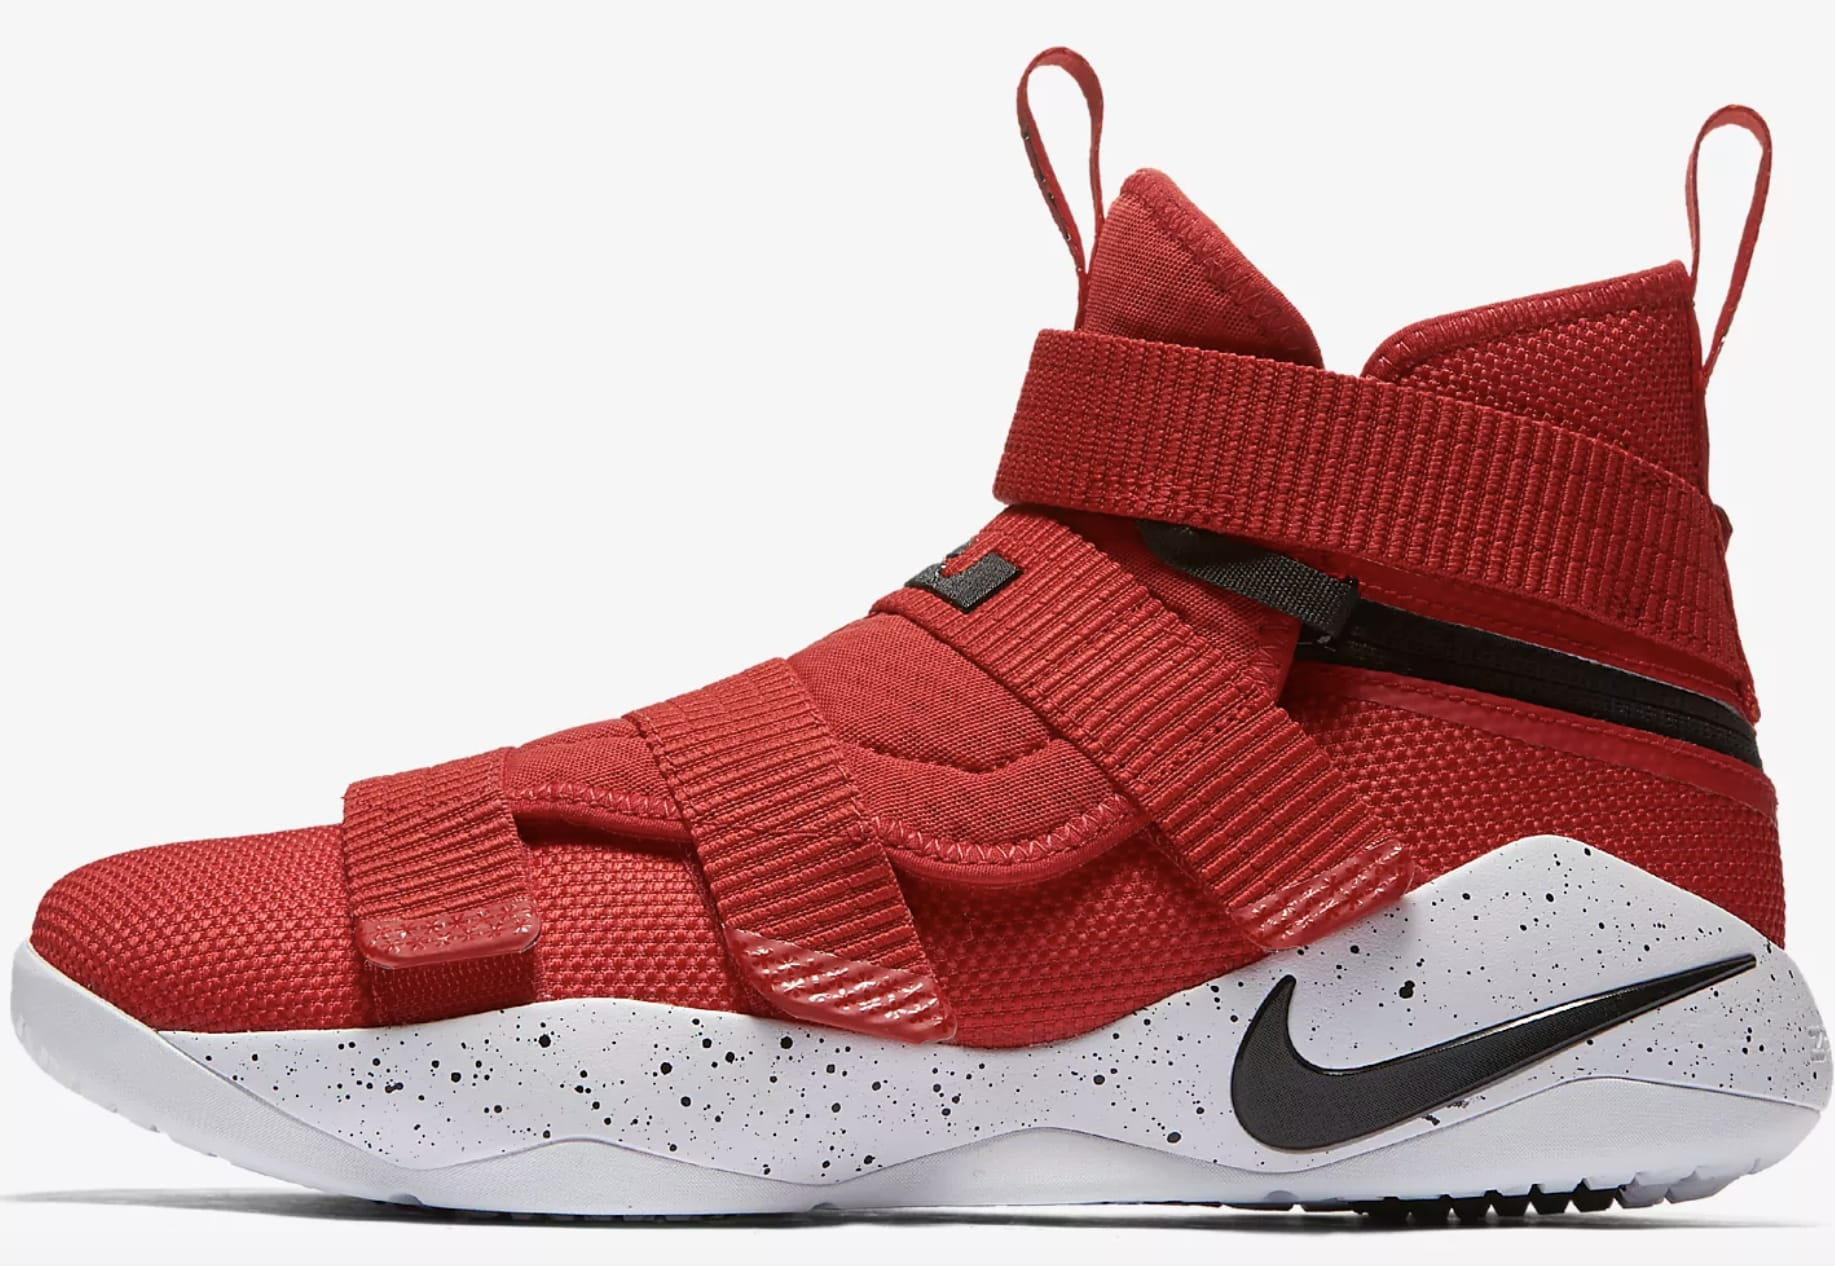 Lebron All Red Shoes